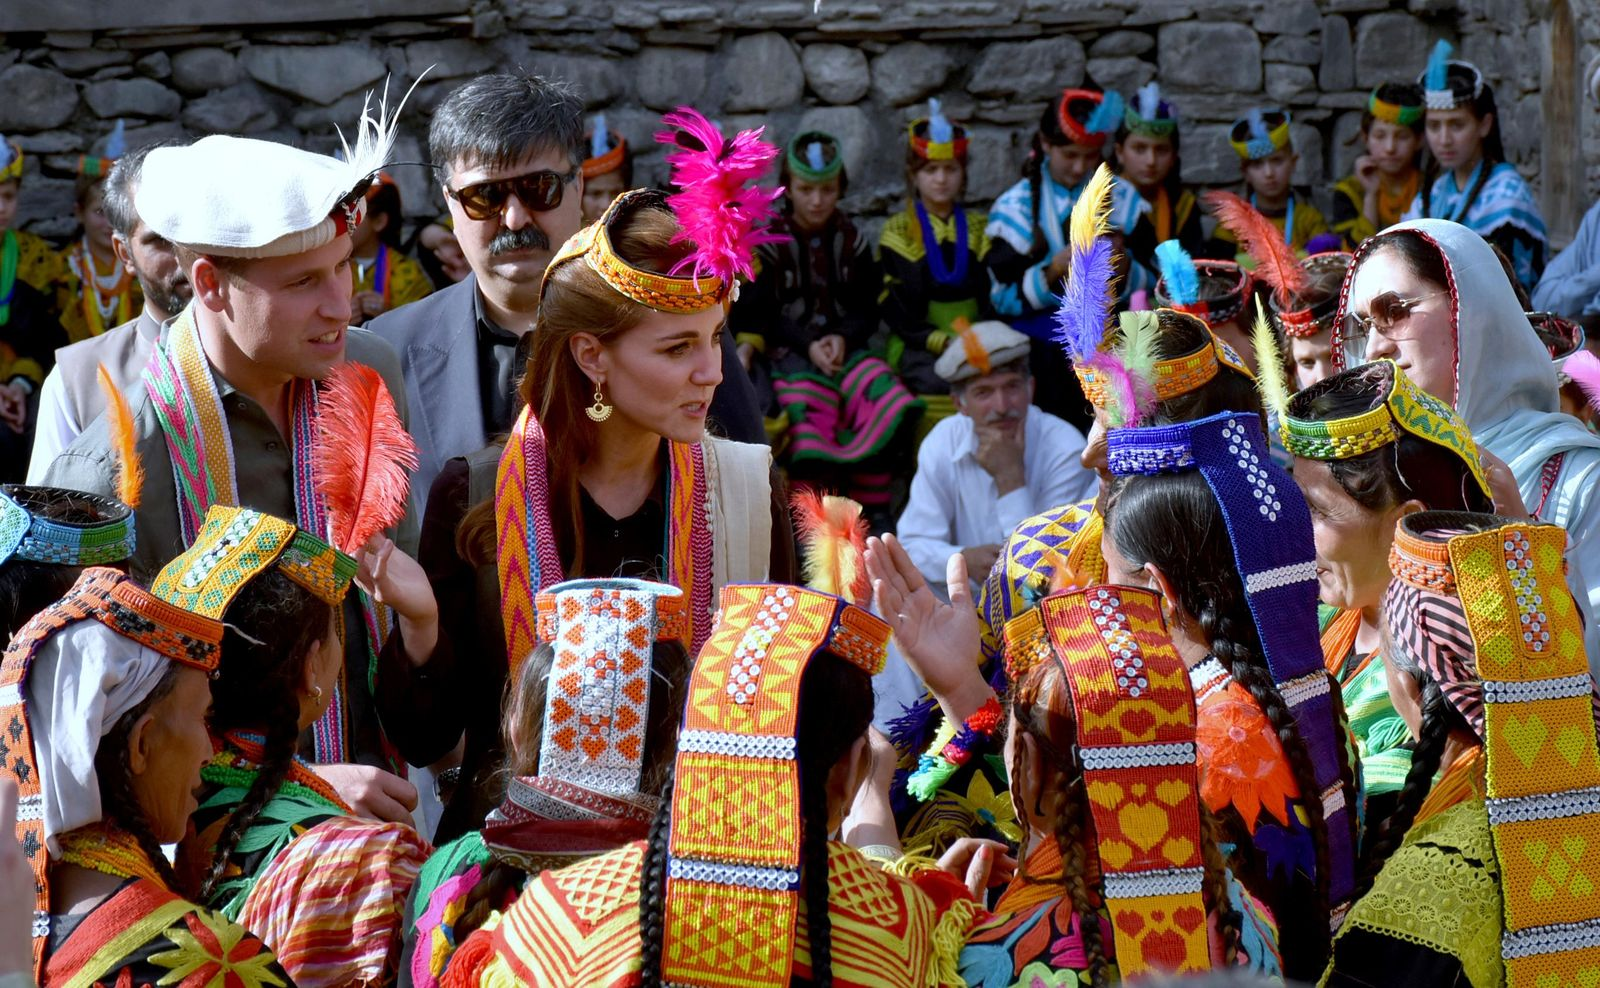 In this photo released by Press Information Department, Britain's Prince William, left, and his wife Kate chat with women of Kalash community during their visit to Bumburate Valley, an area of Pakistan's northern Chitral district, Wednesday Oct. 16, 2019. (Press Information Department via AP)